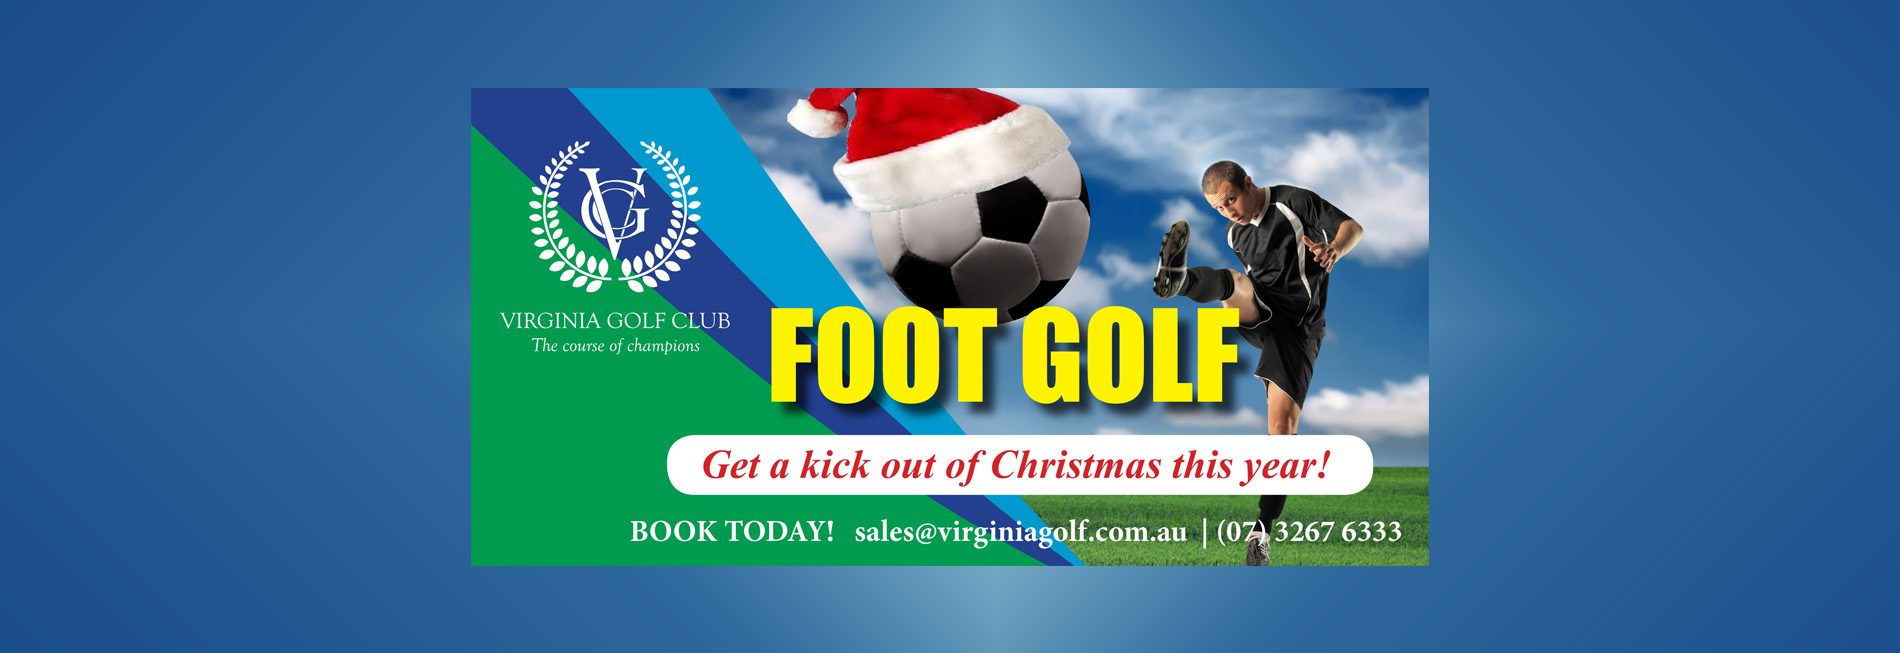 Footgolf slider Christmas